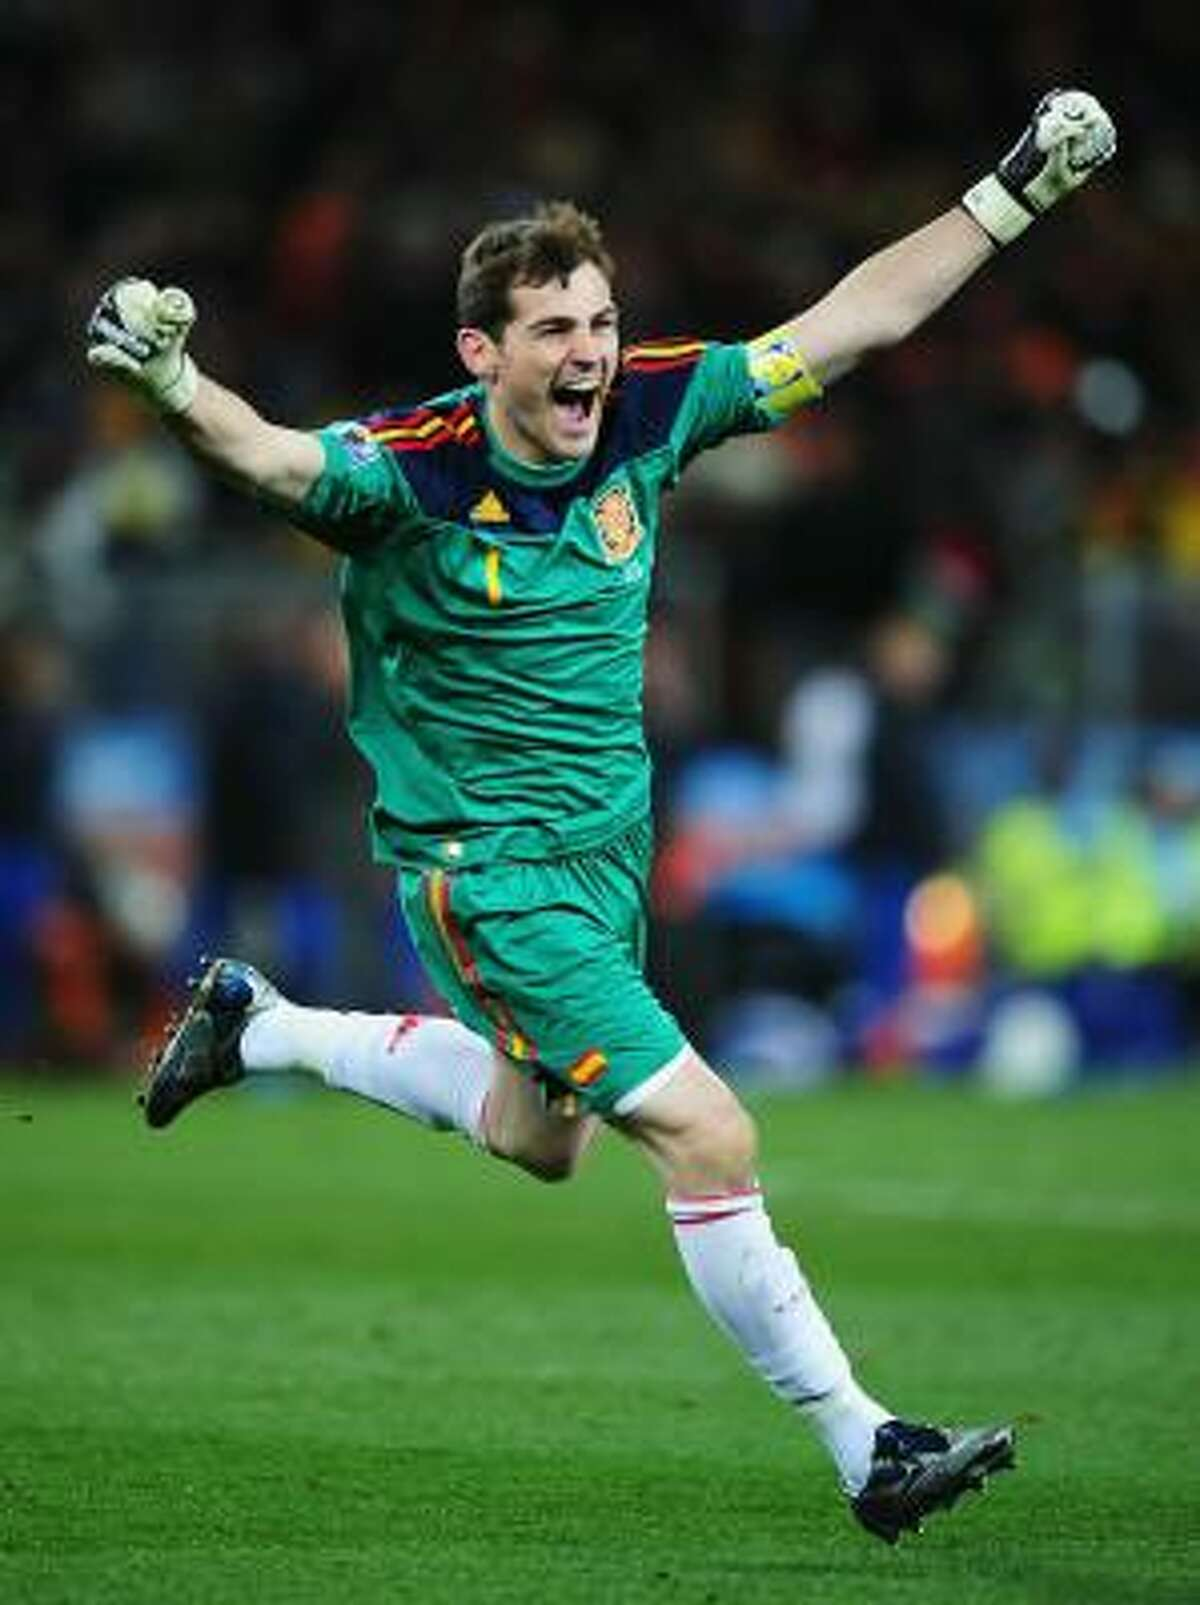 Iker Casillas, Spain's captain, celebrates the late goal by Andres Iniesta.